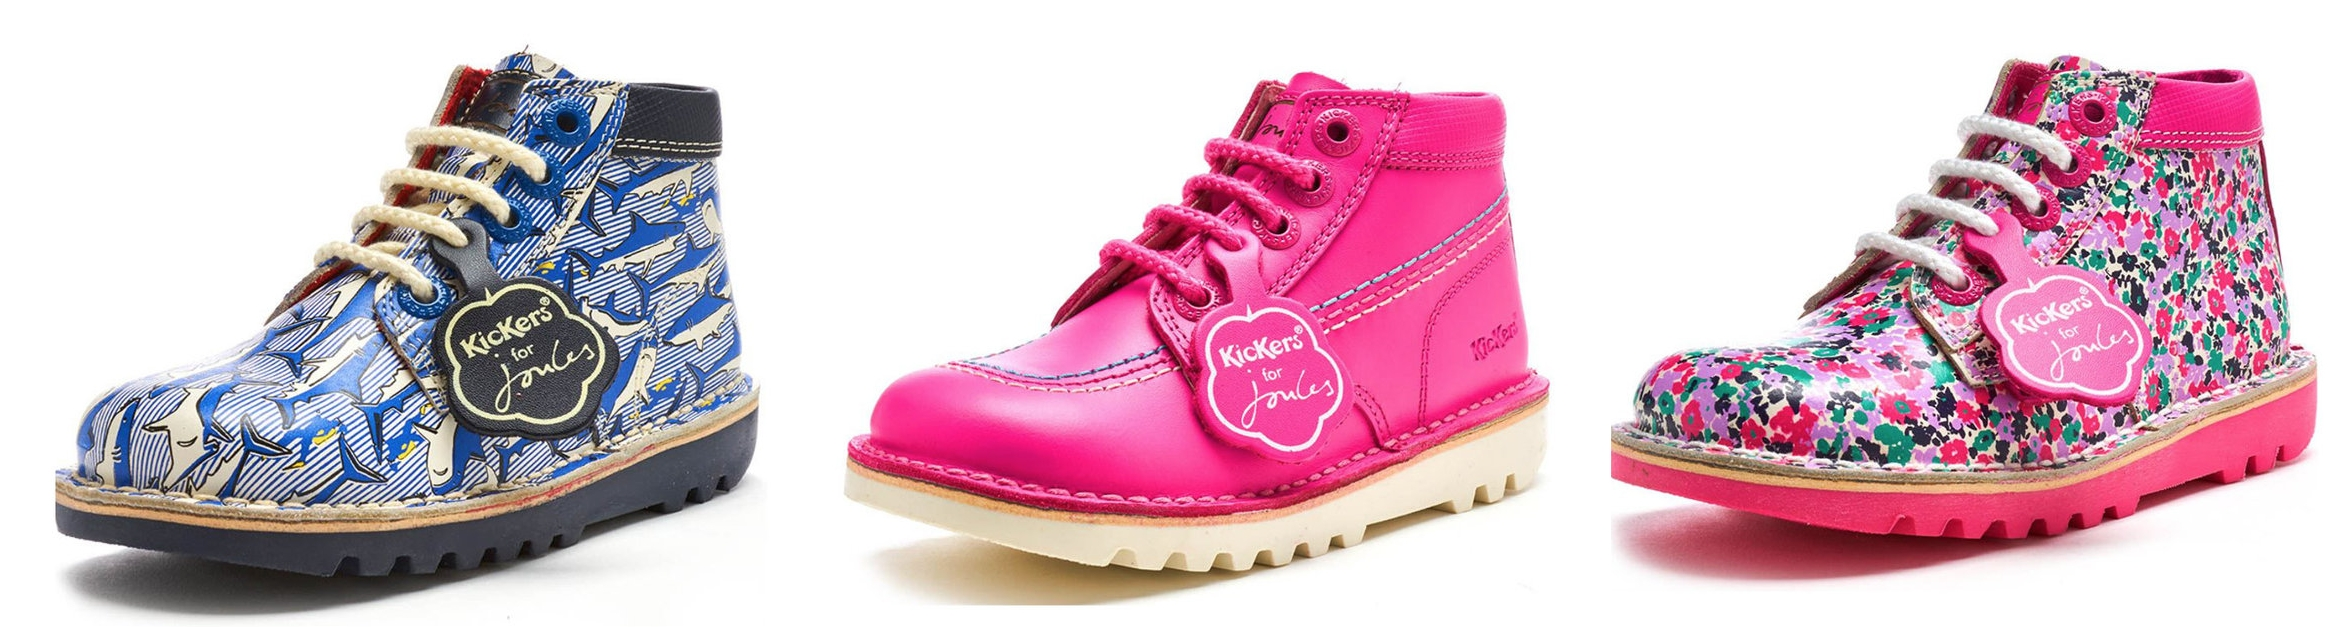 The Kickers x Joules collab (currently on sale). Available to buy at  www.kickers.co.uk